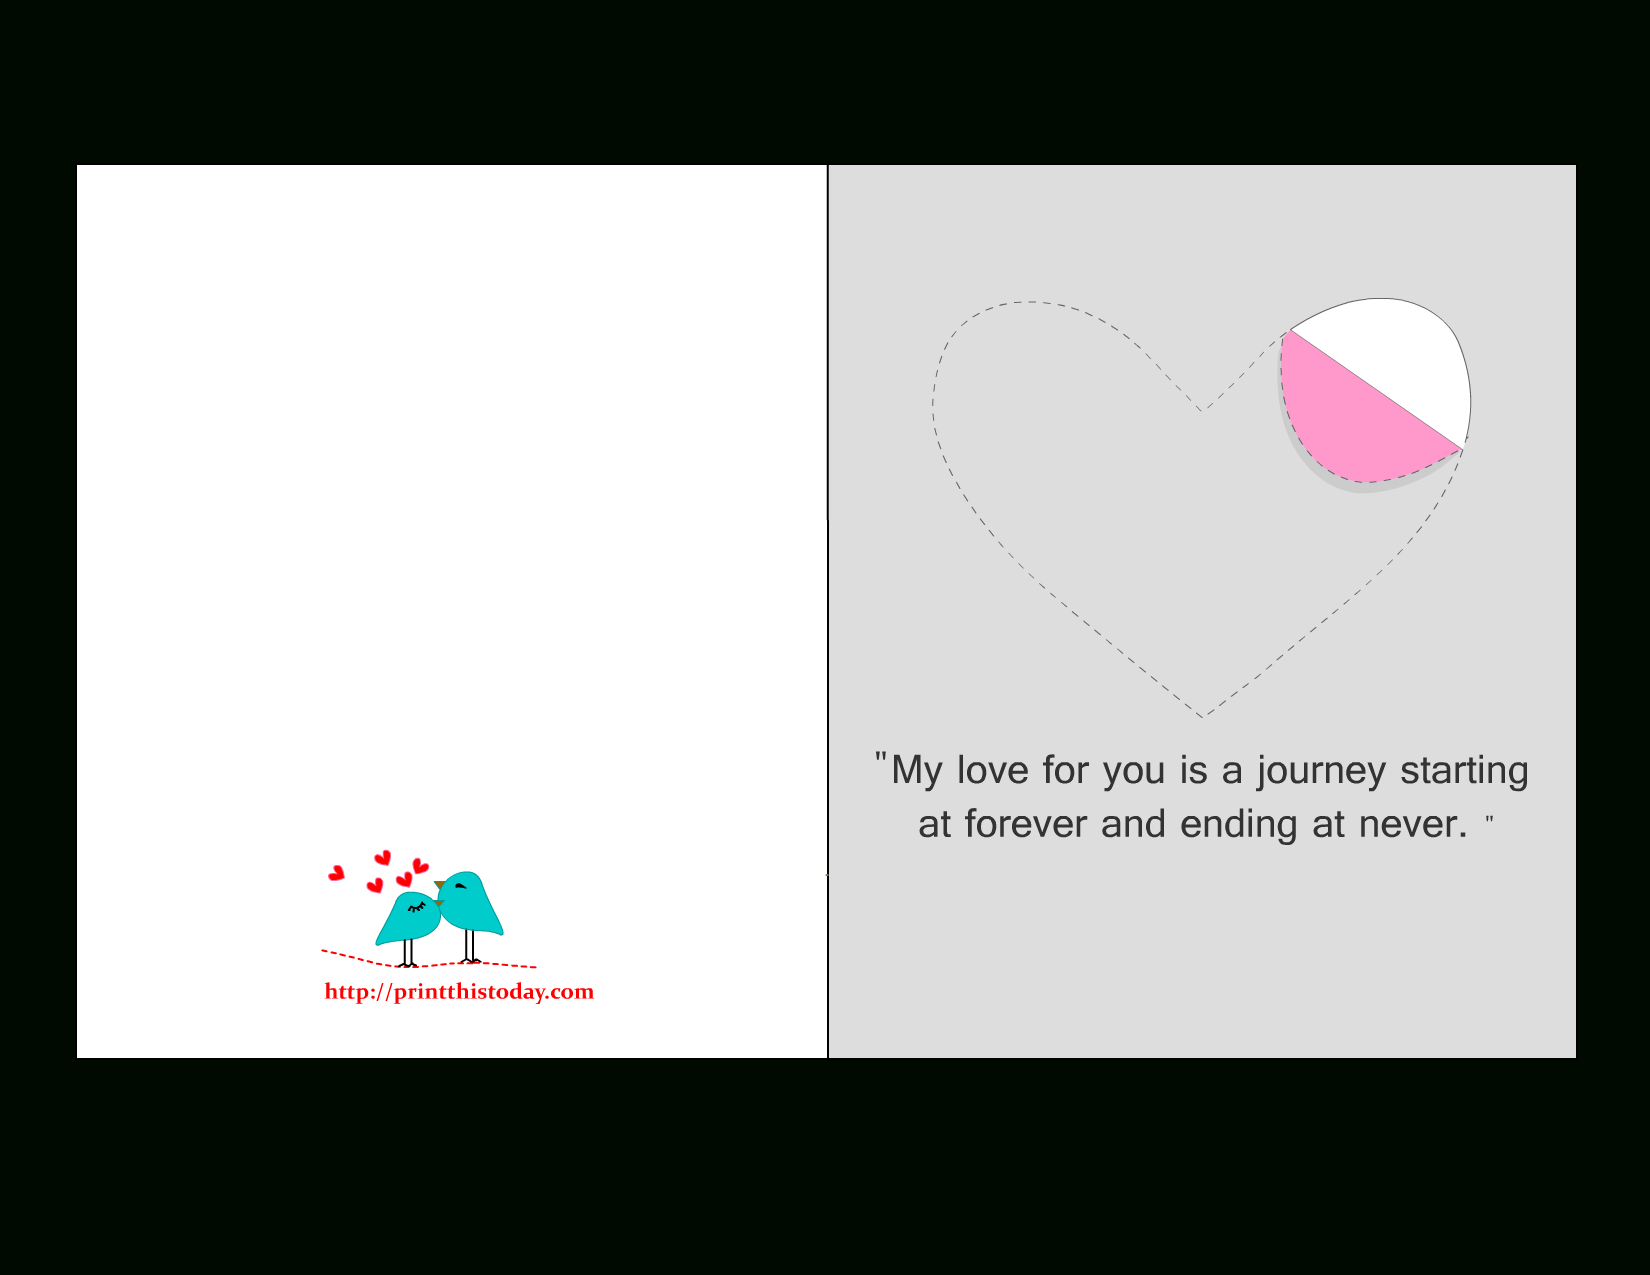 Printable Love Cards With Cute, Romantic And Thoughtful Quotes - Free Printable Love Cards